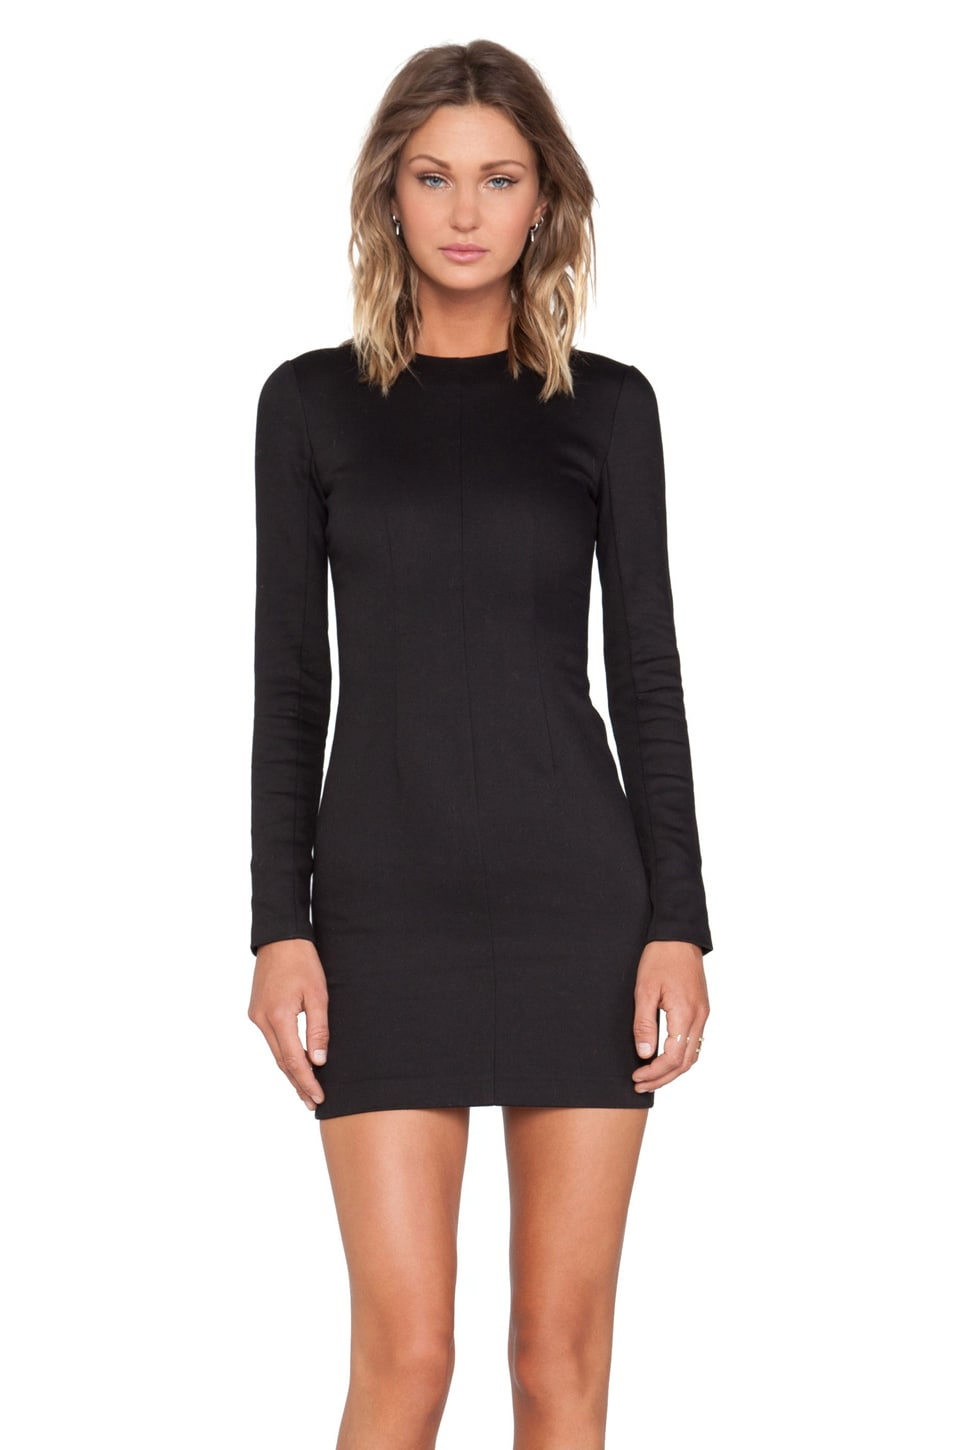 T by Alexander Wang Denim Long Sleeve Dress in Black